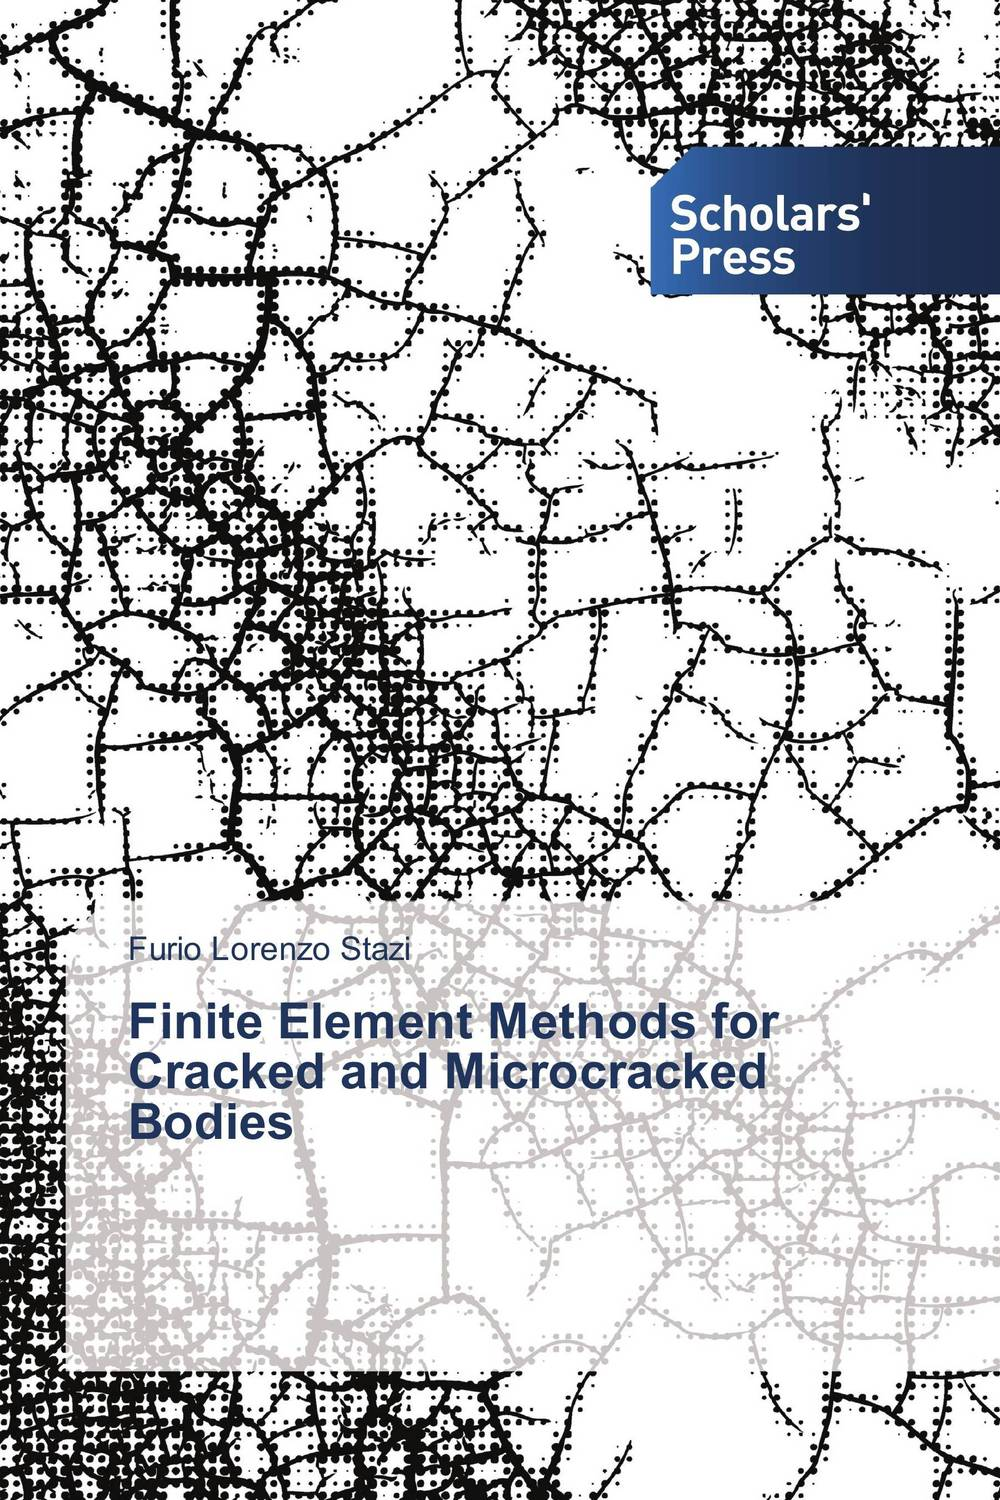 Finite Element Methods for Cracked and Microcracked Bodies